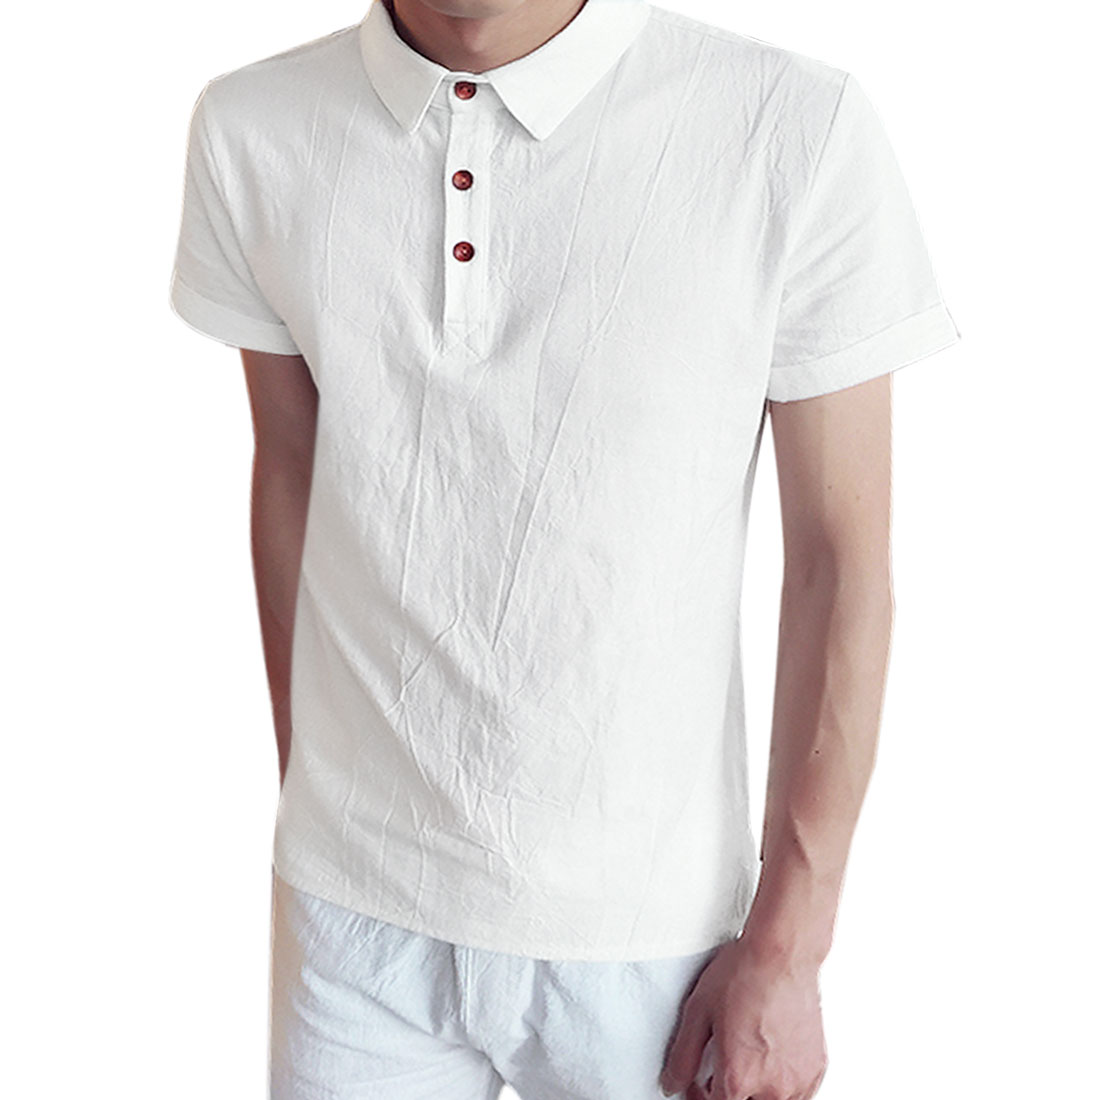 Azzuro Men's Collared Short Sleeves Half Placket Polo Shirt White (Size M / 38)